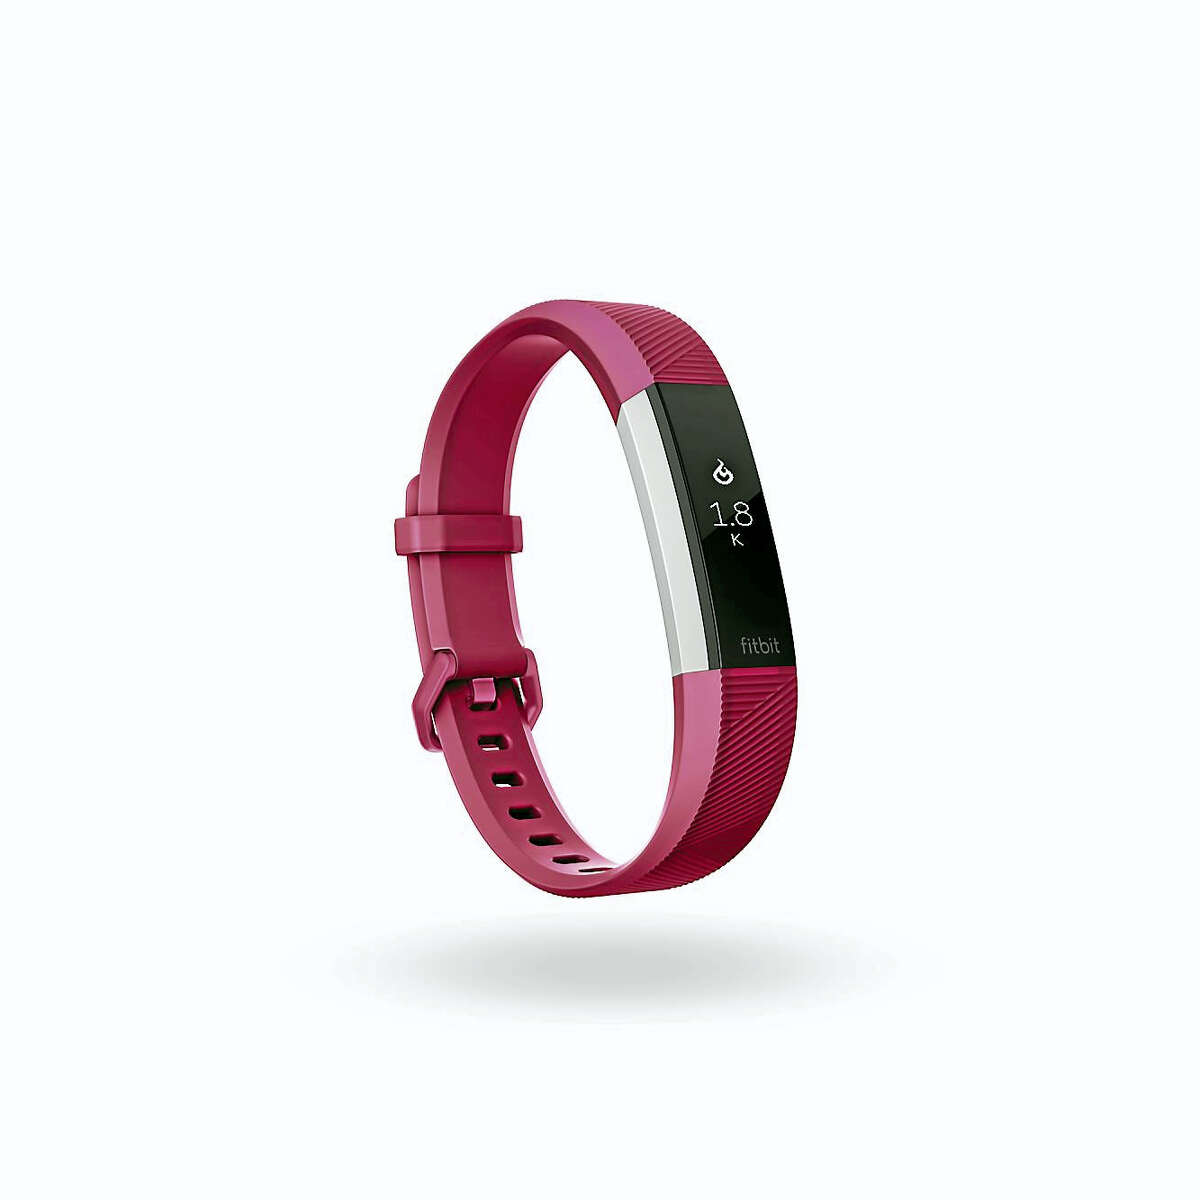 A view of the Alta HR in a classic fuchsia band showing 1.8K (1,800) calories burned.